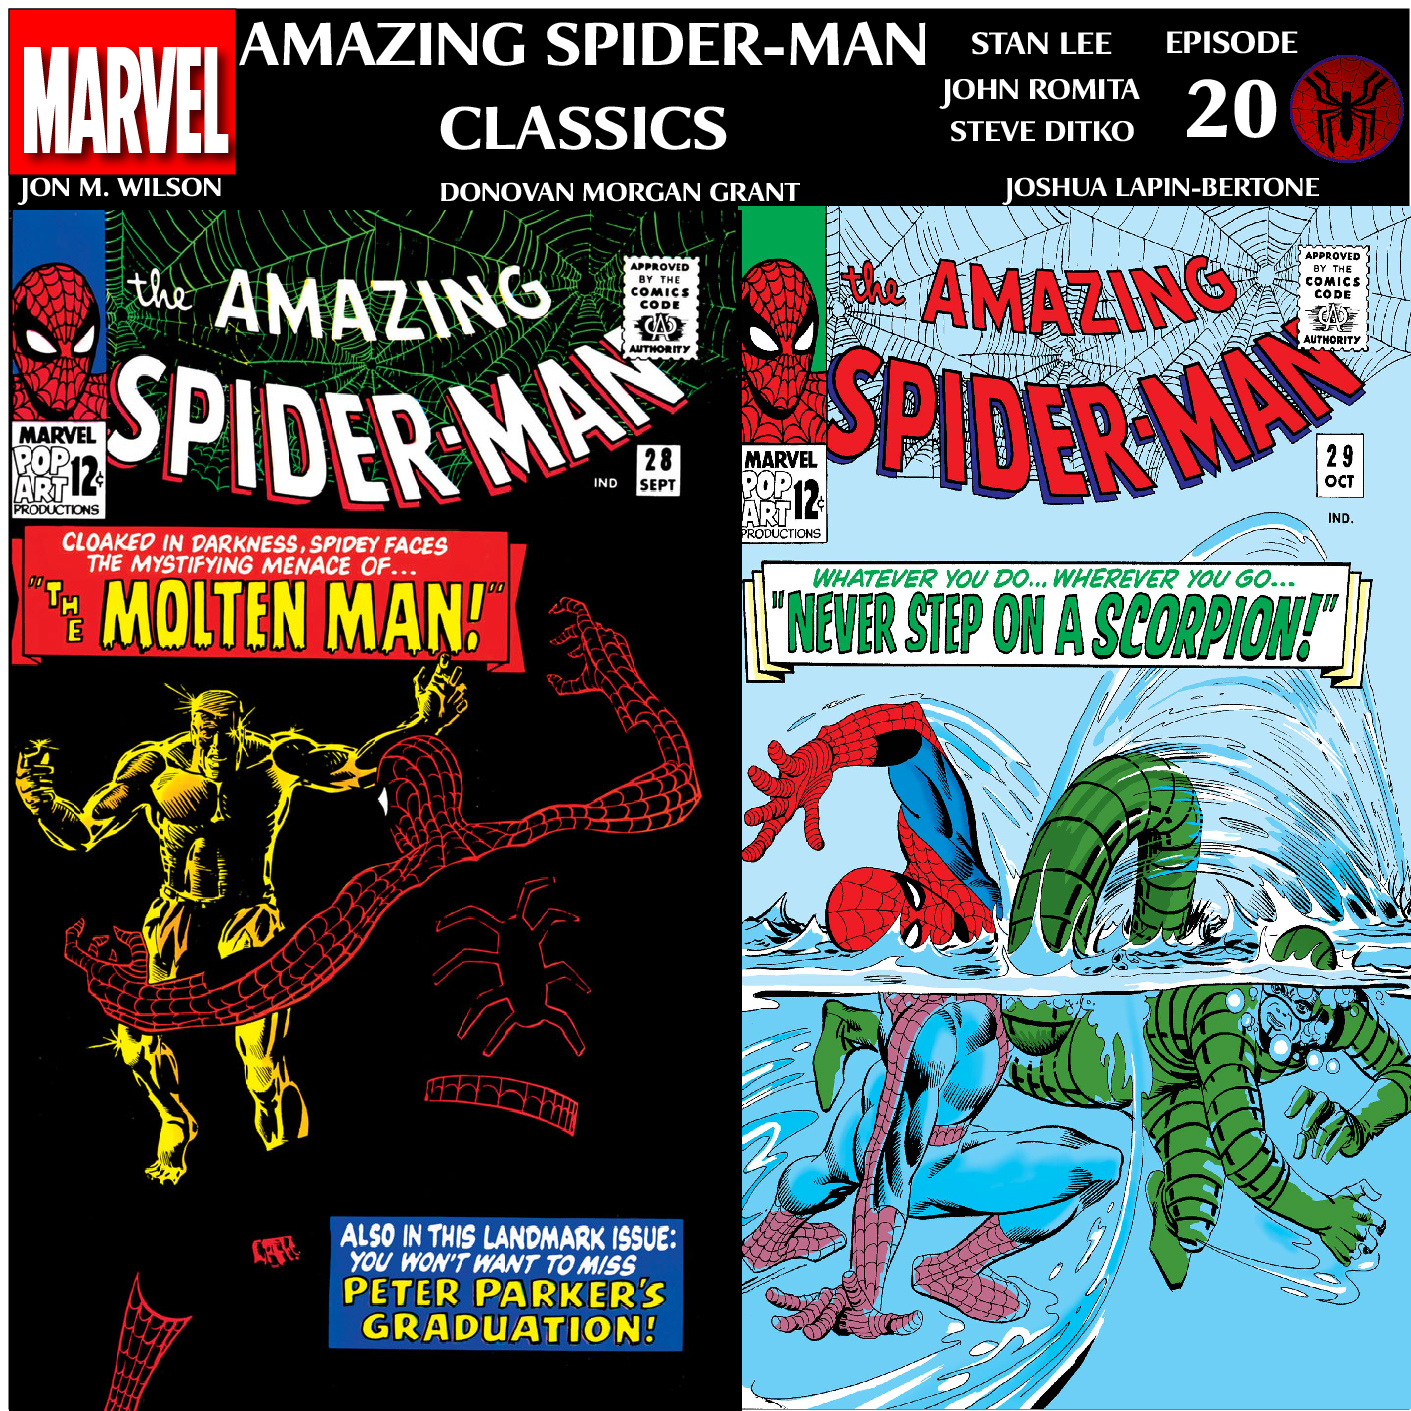 ASM Classics Episode 20: Amazing Spider-Man 28 & 29